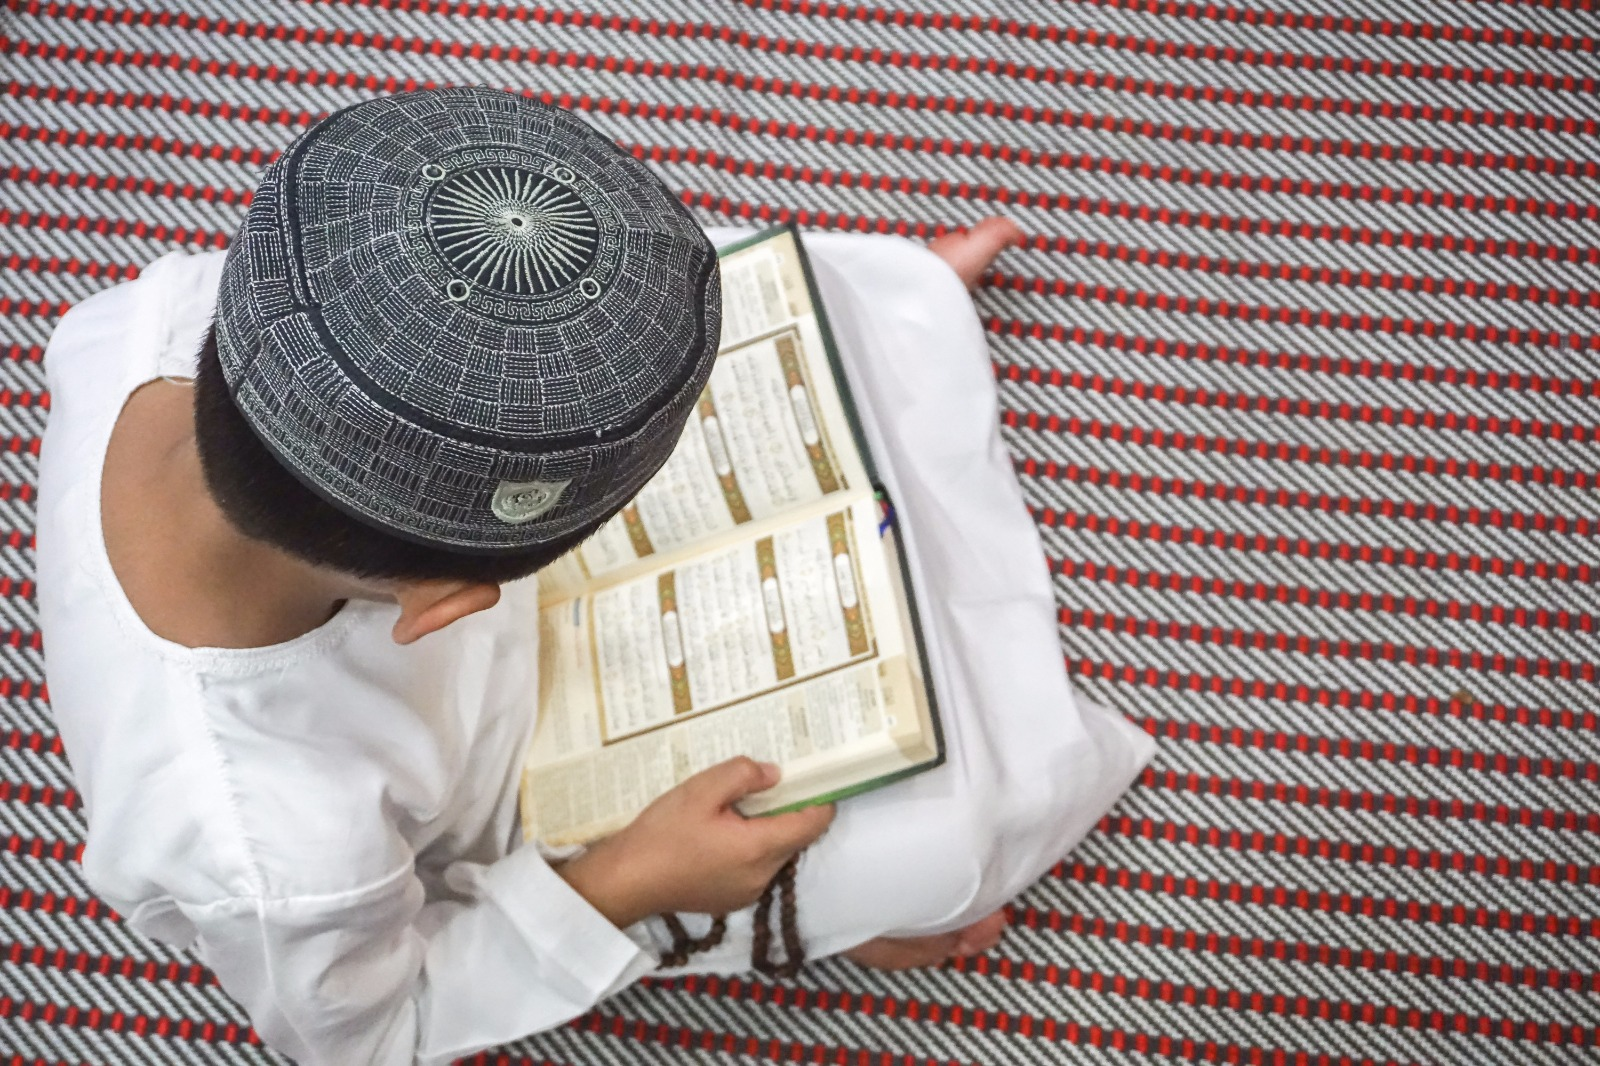 Relationship with the Qur'an